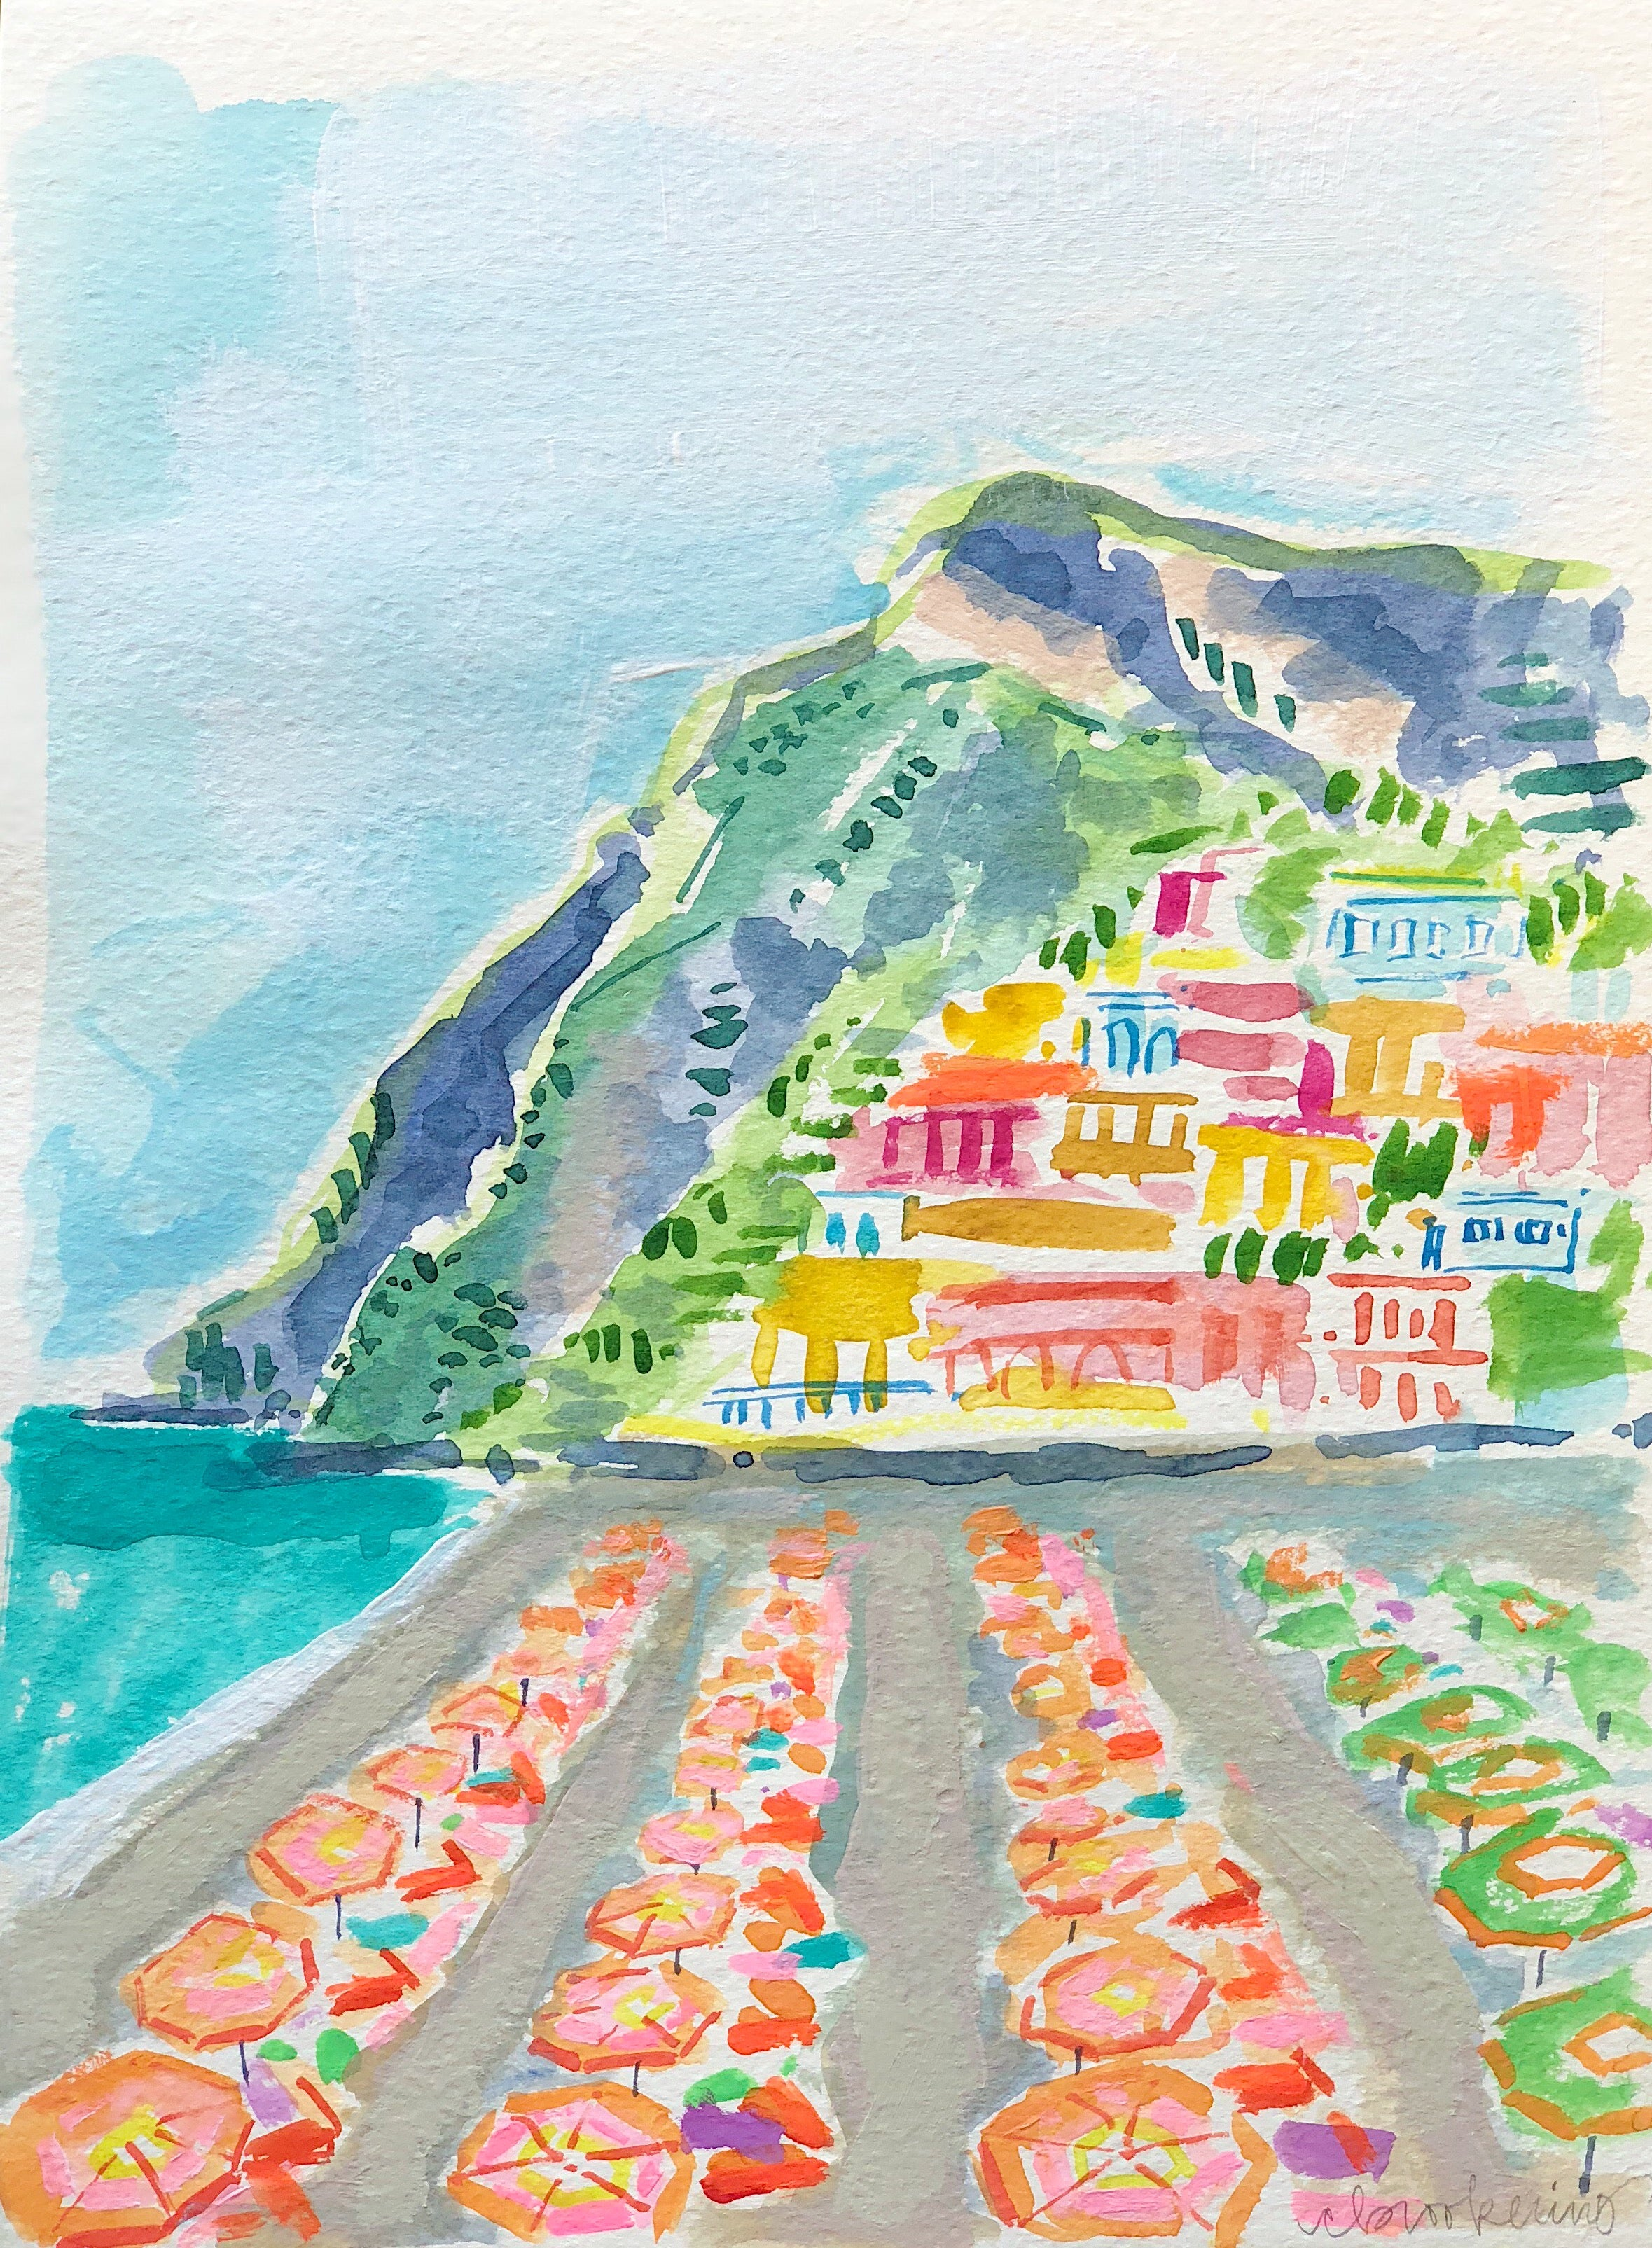 Positano for the Weekend